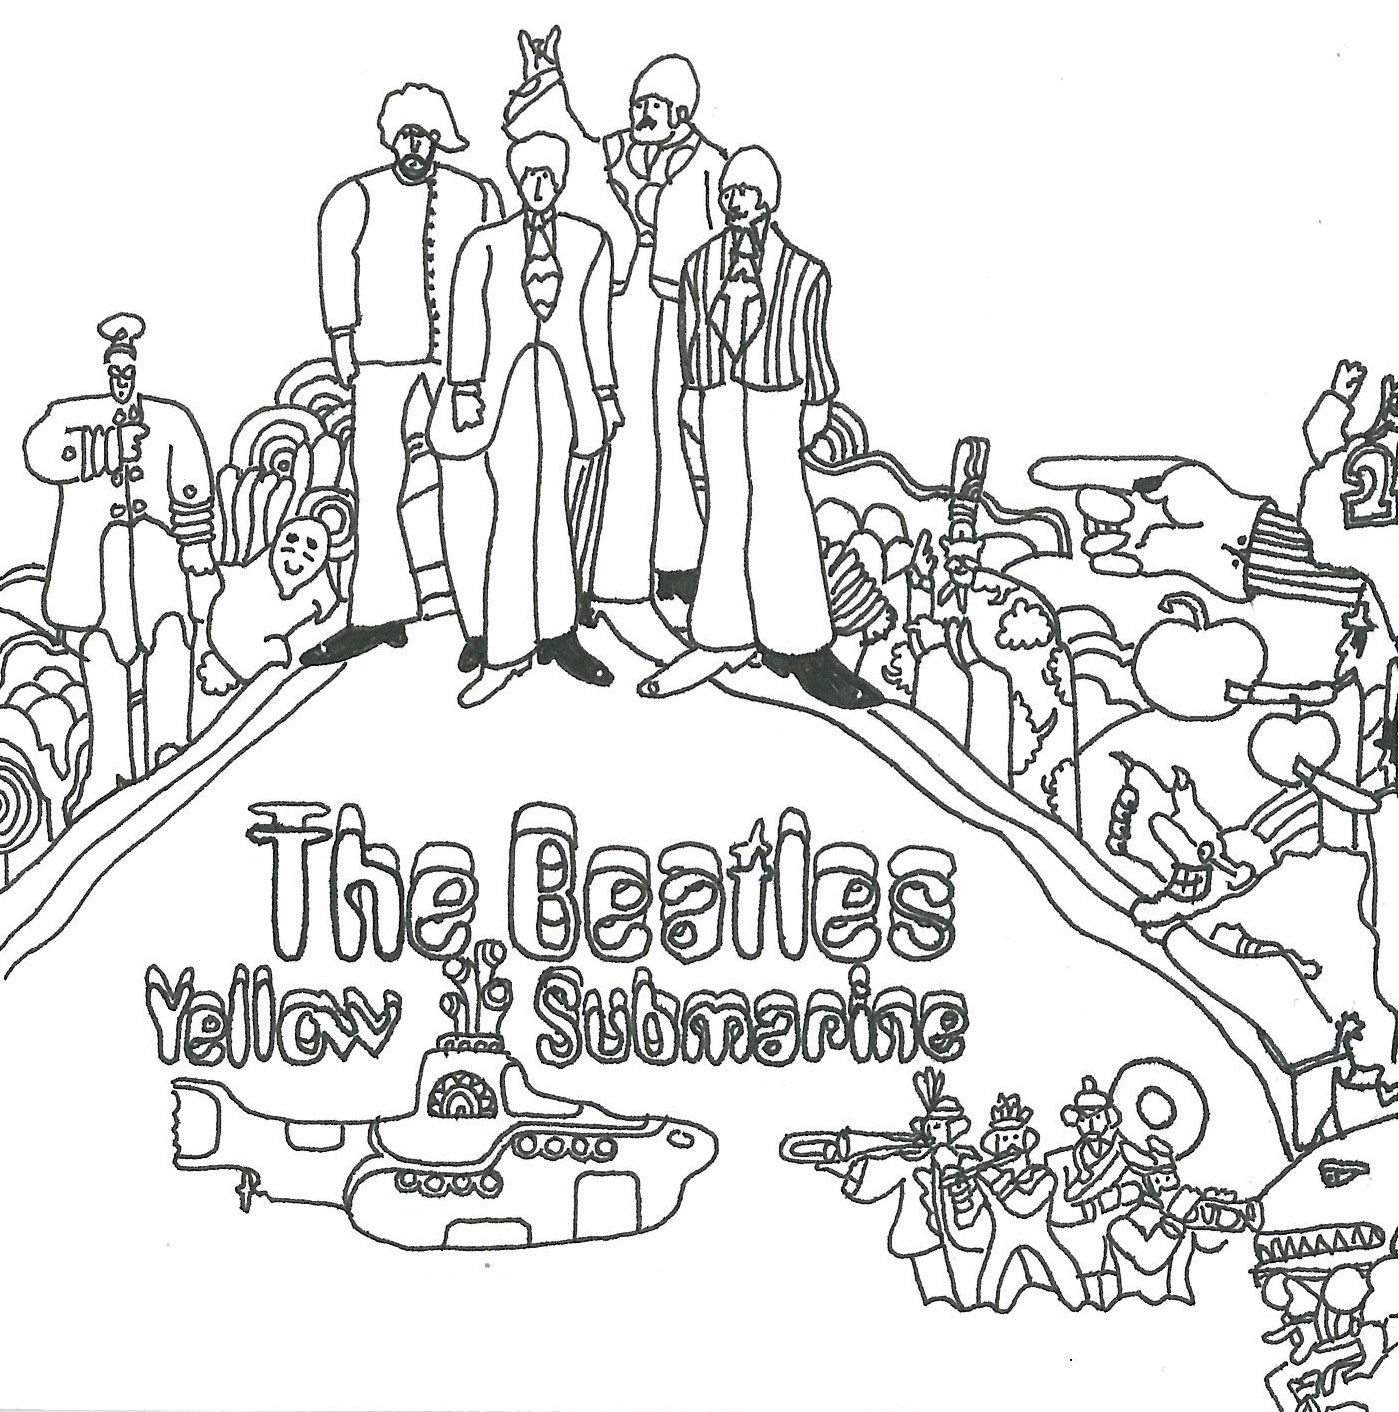 Yellow Submarine Coloring Pages Coloring Home Yellow Submarine Coloring Pages